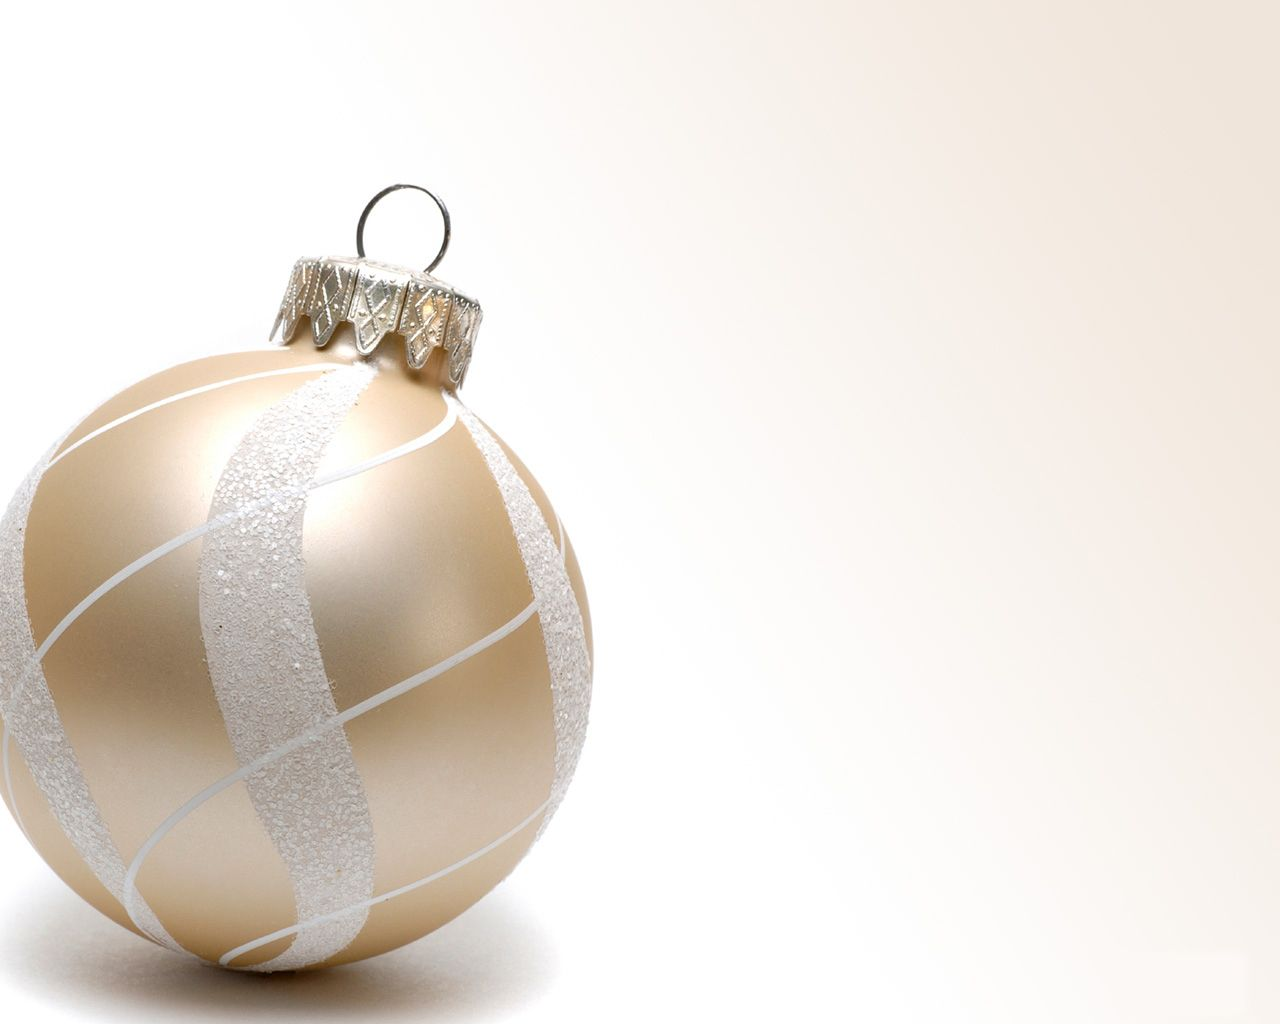 Christmas Ornament - White Wallpaper - Christian Wallpapers and ...